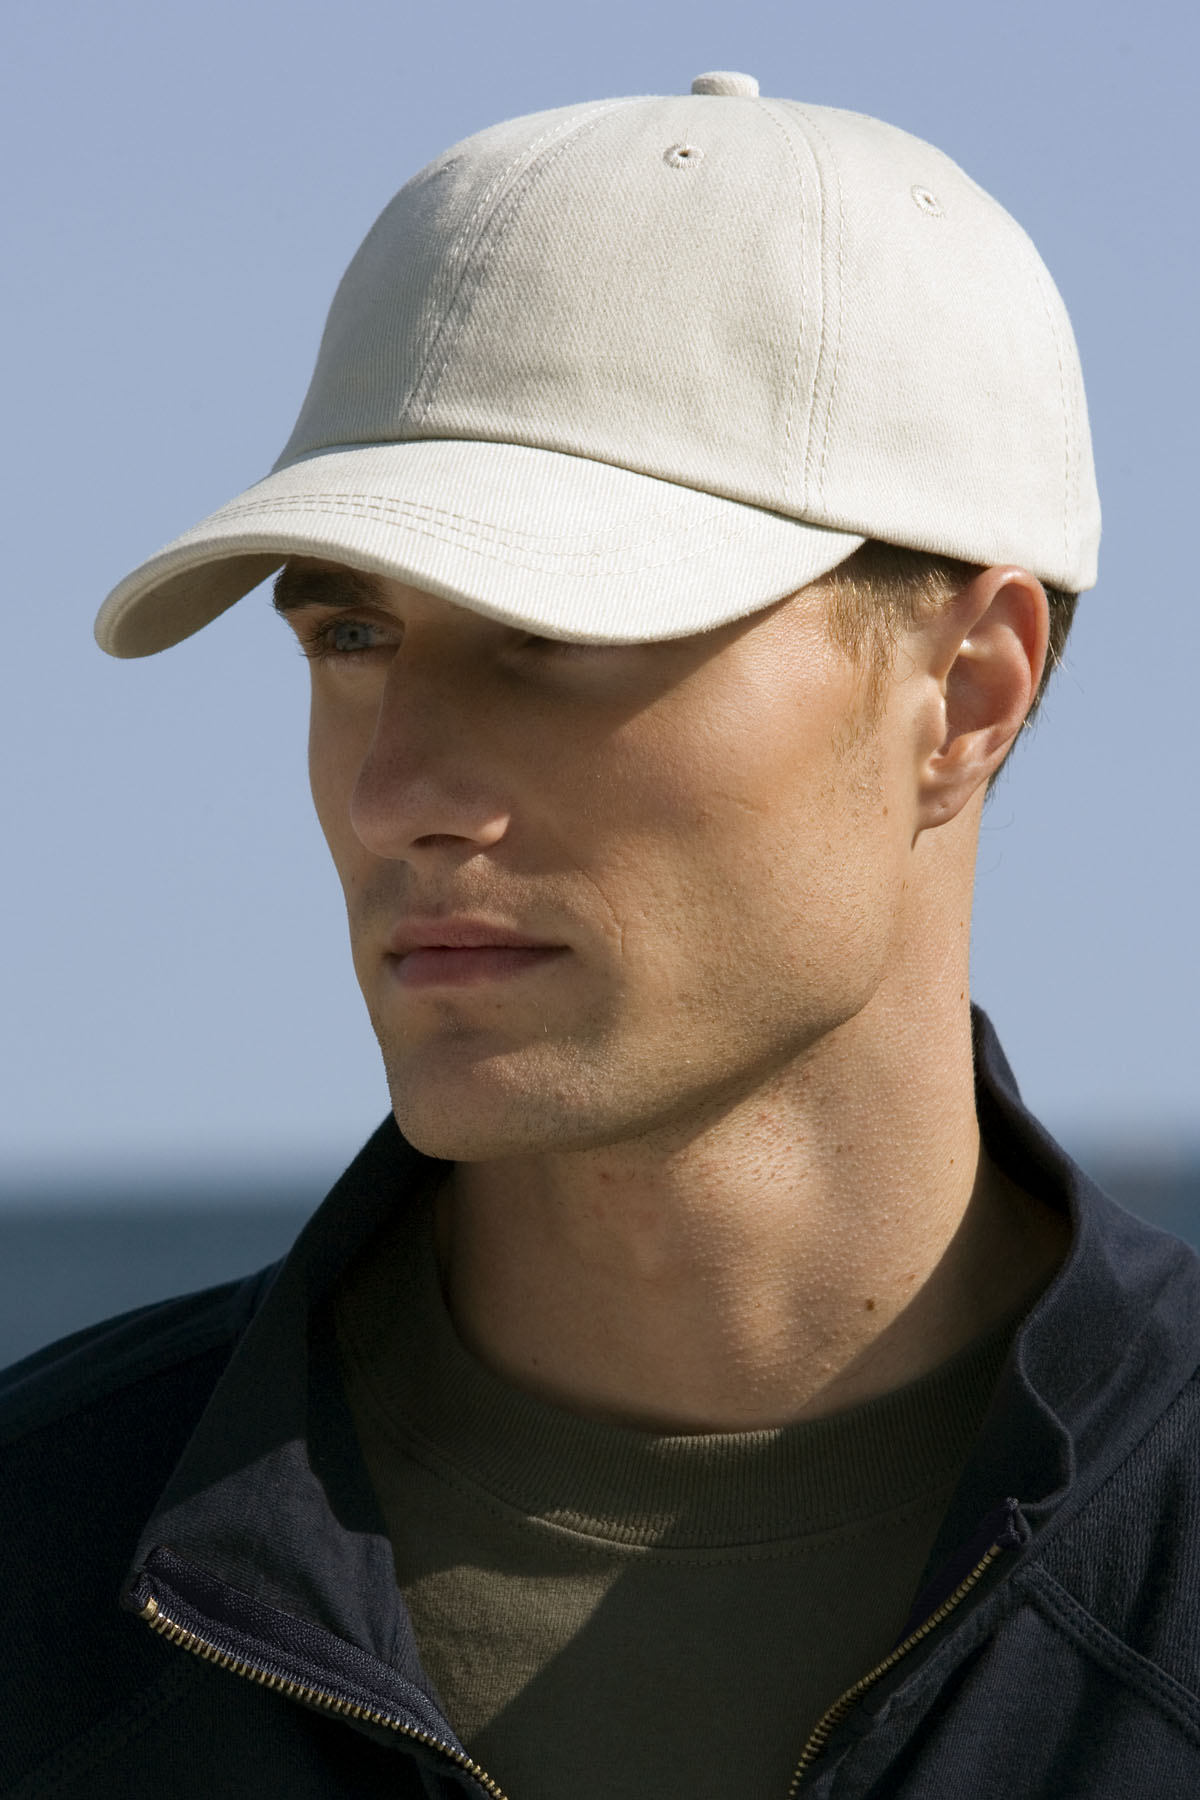 Vantage 0110 - Solid Brushed Twill Cap